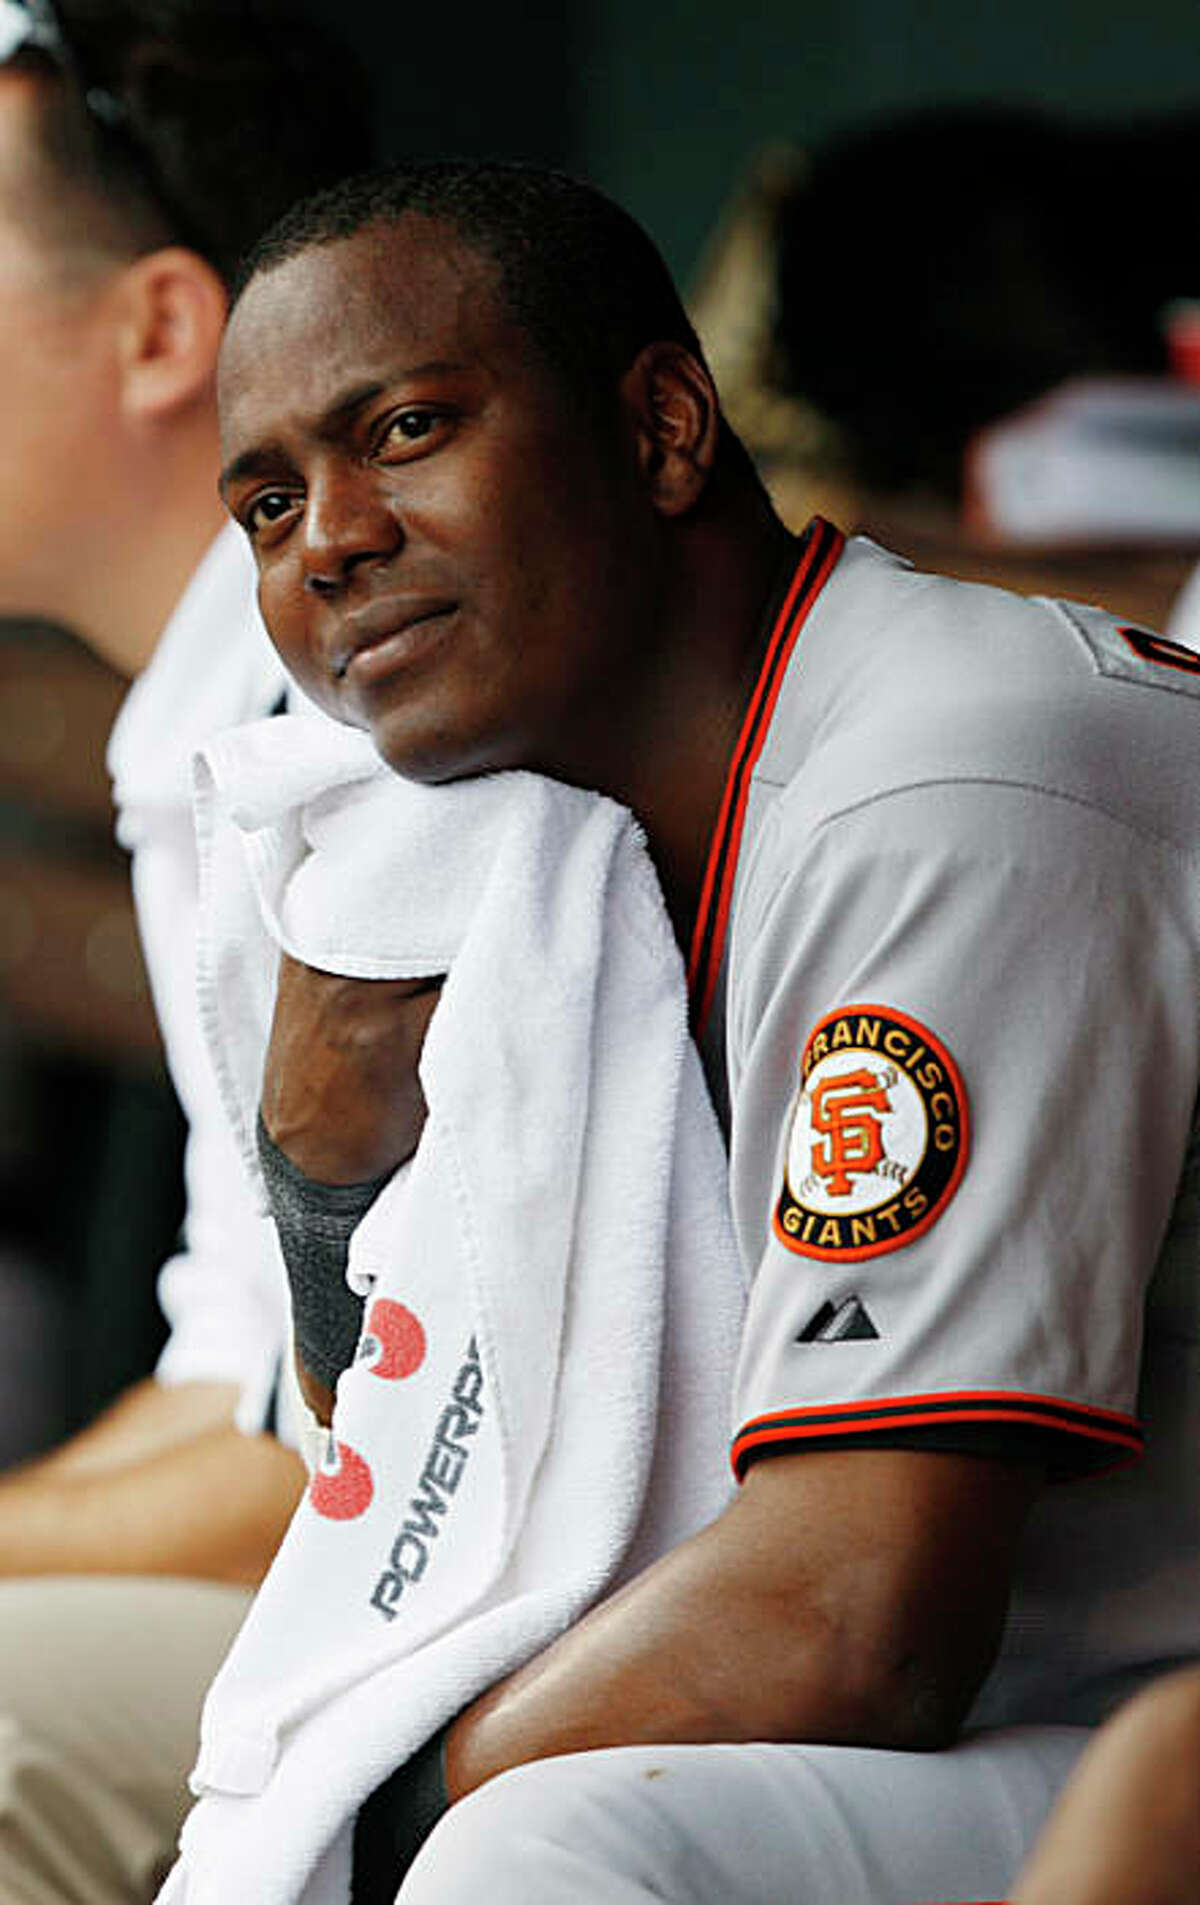 San Francisco Giants' Edgar Renteria checks the scoreboard while sitting in the dugout in the ninth inning of the Colorado Rockies' 4-2 victory in a baseball game in Denver on Sunday, July 26, 2009. (AP Photo/David Zalubowski)